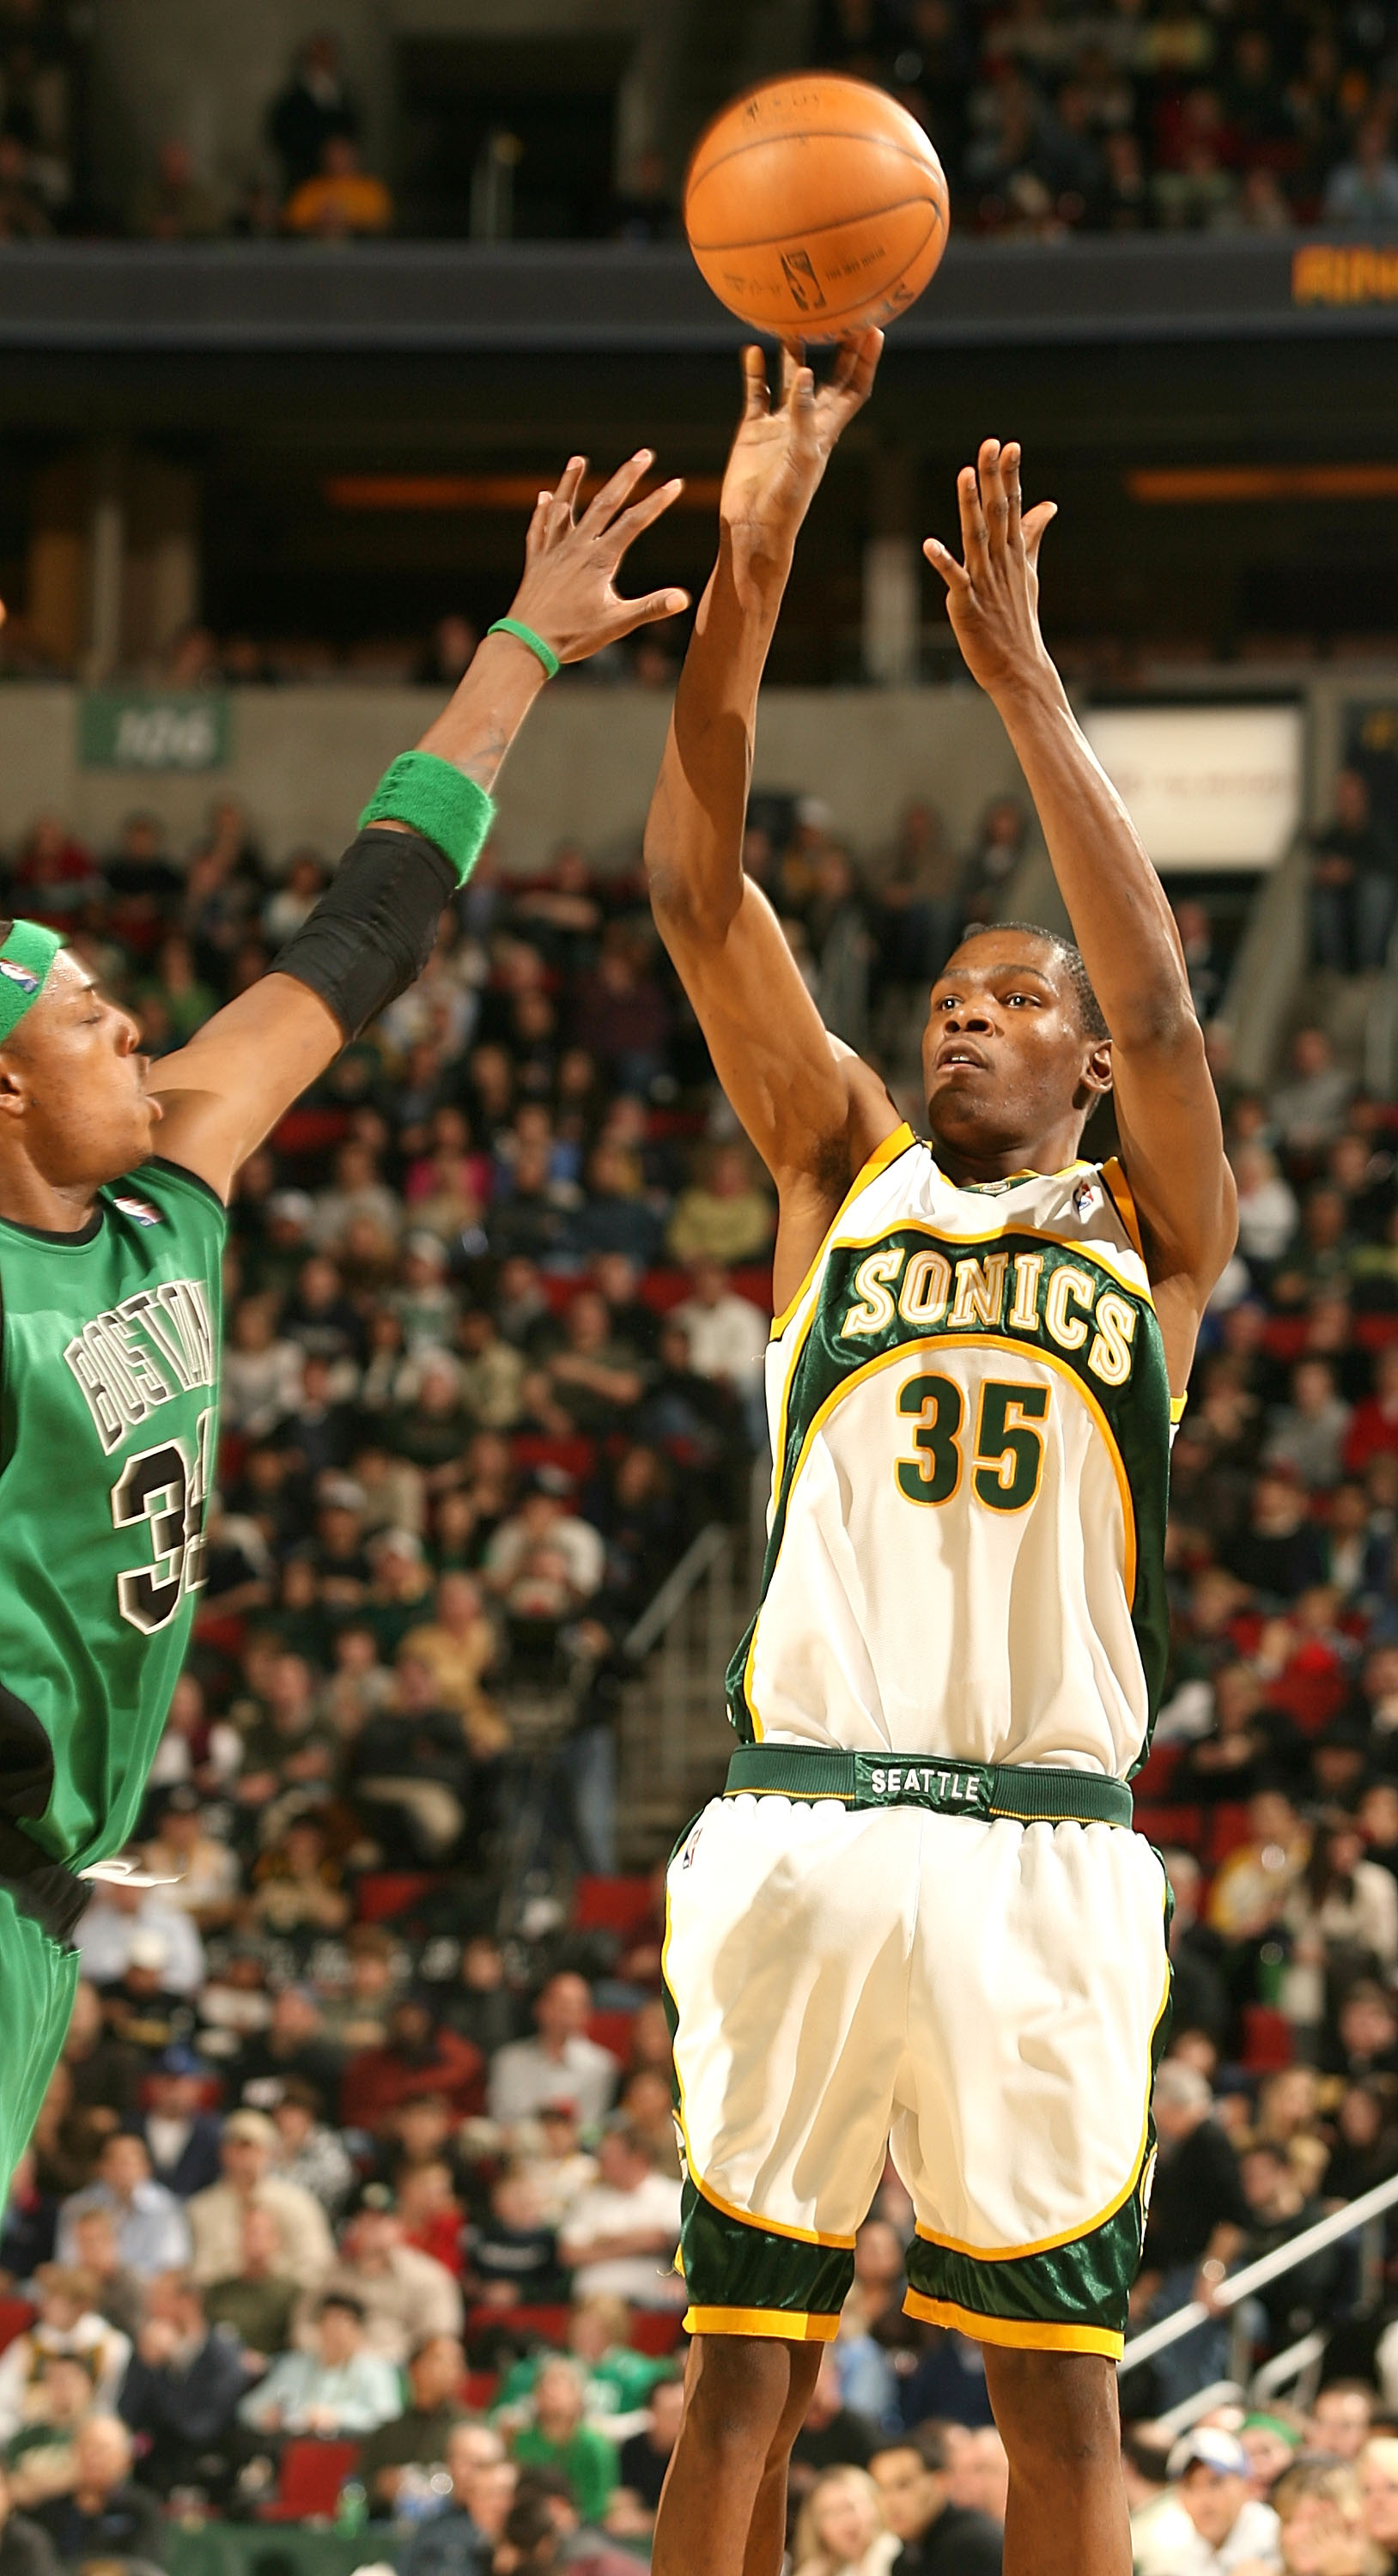 SEATTLE - DECEMBER 27:  Kevin Durant #35 of the Seattle SuperSonics shoots against Paul Pierce #34 of the Boston Celtics at Key Arena December 27, 2007 in Seattle, Washington. The Celtics defeated the Sonics 104-96. (Photo by Otto Greule Jr/Getty Images)